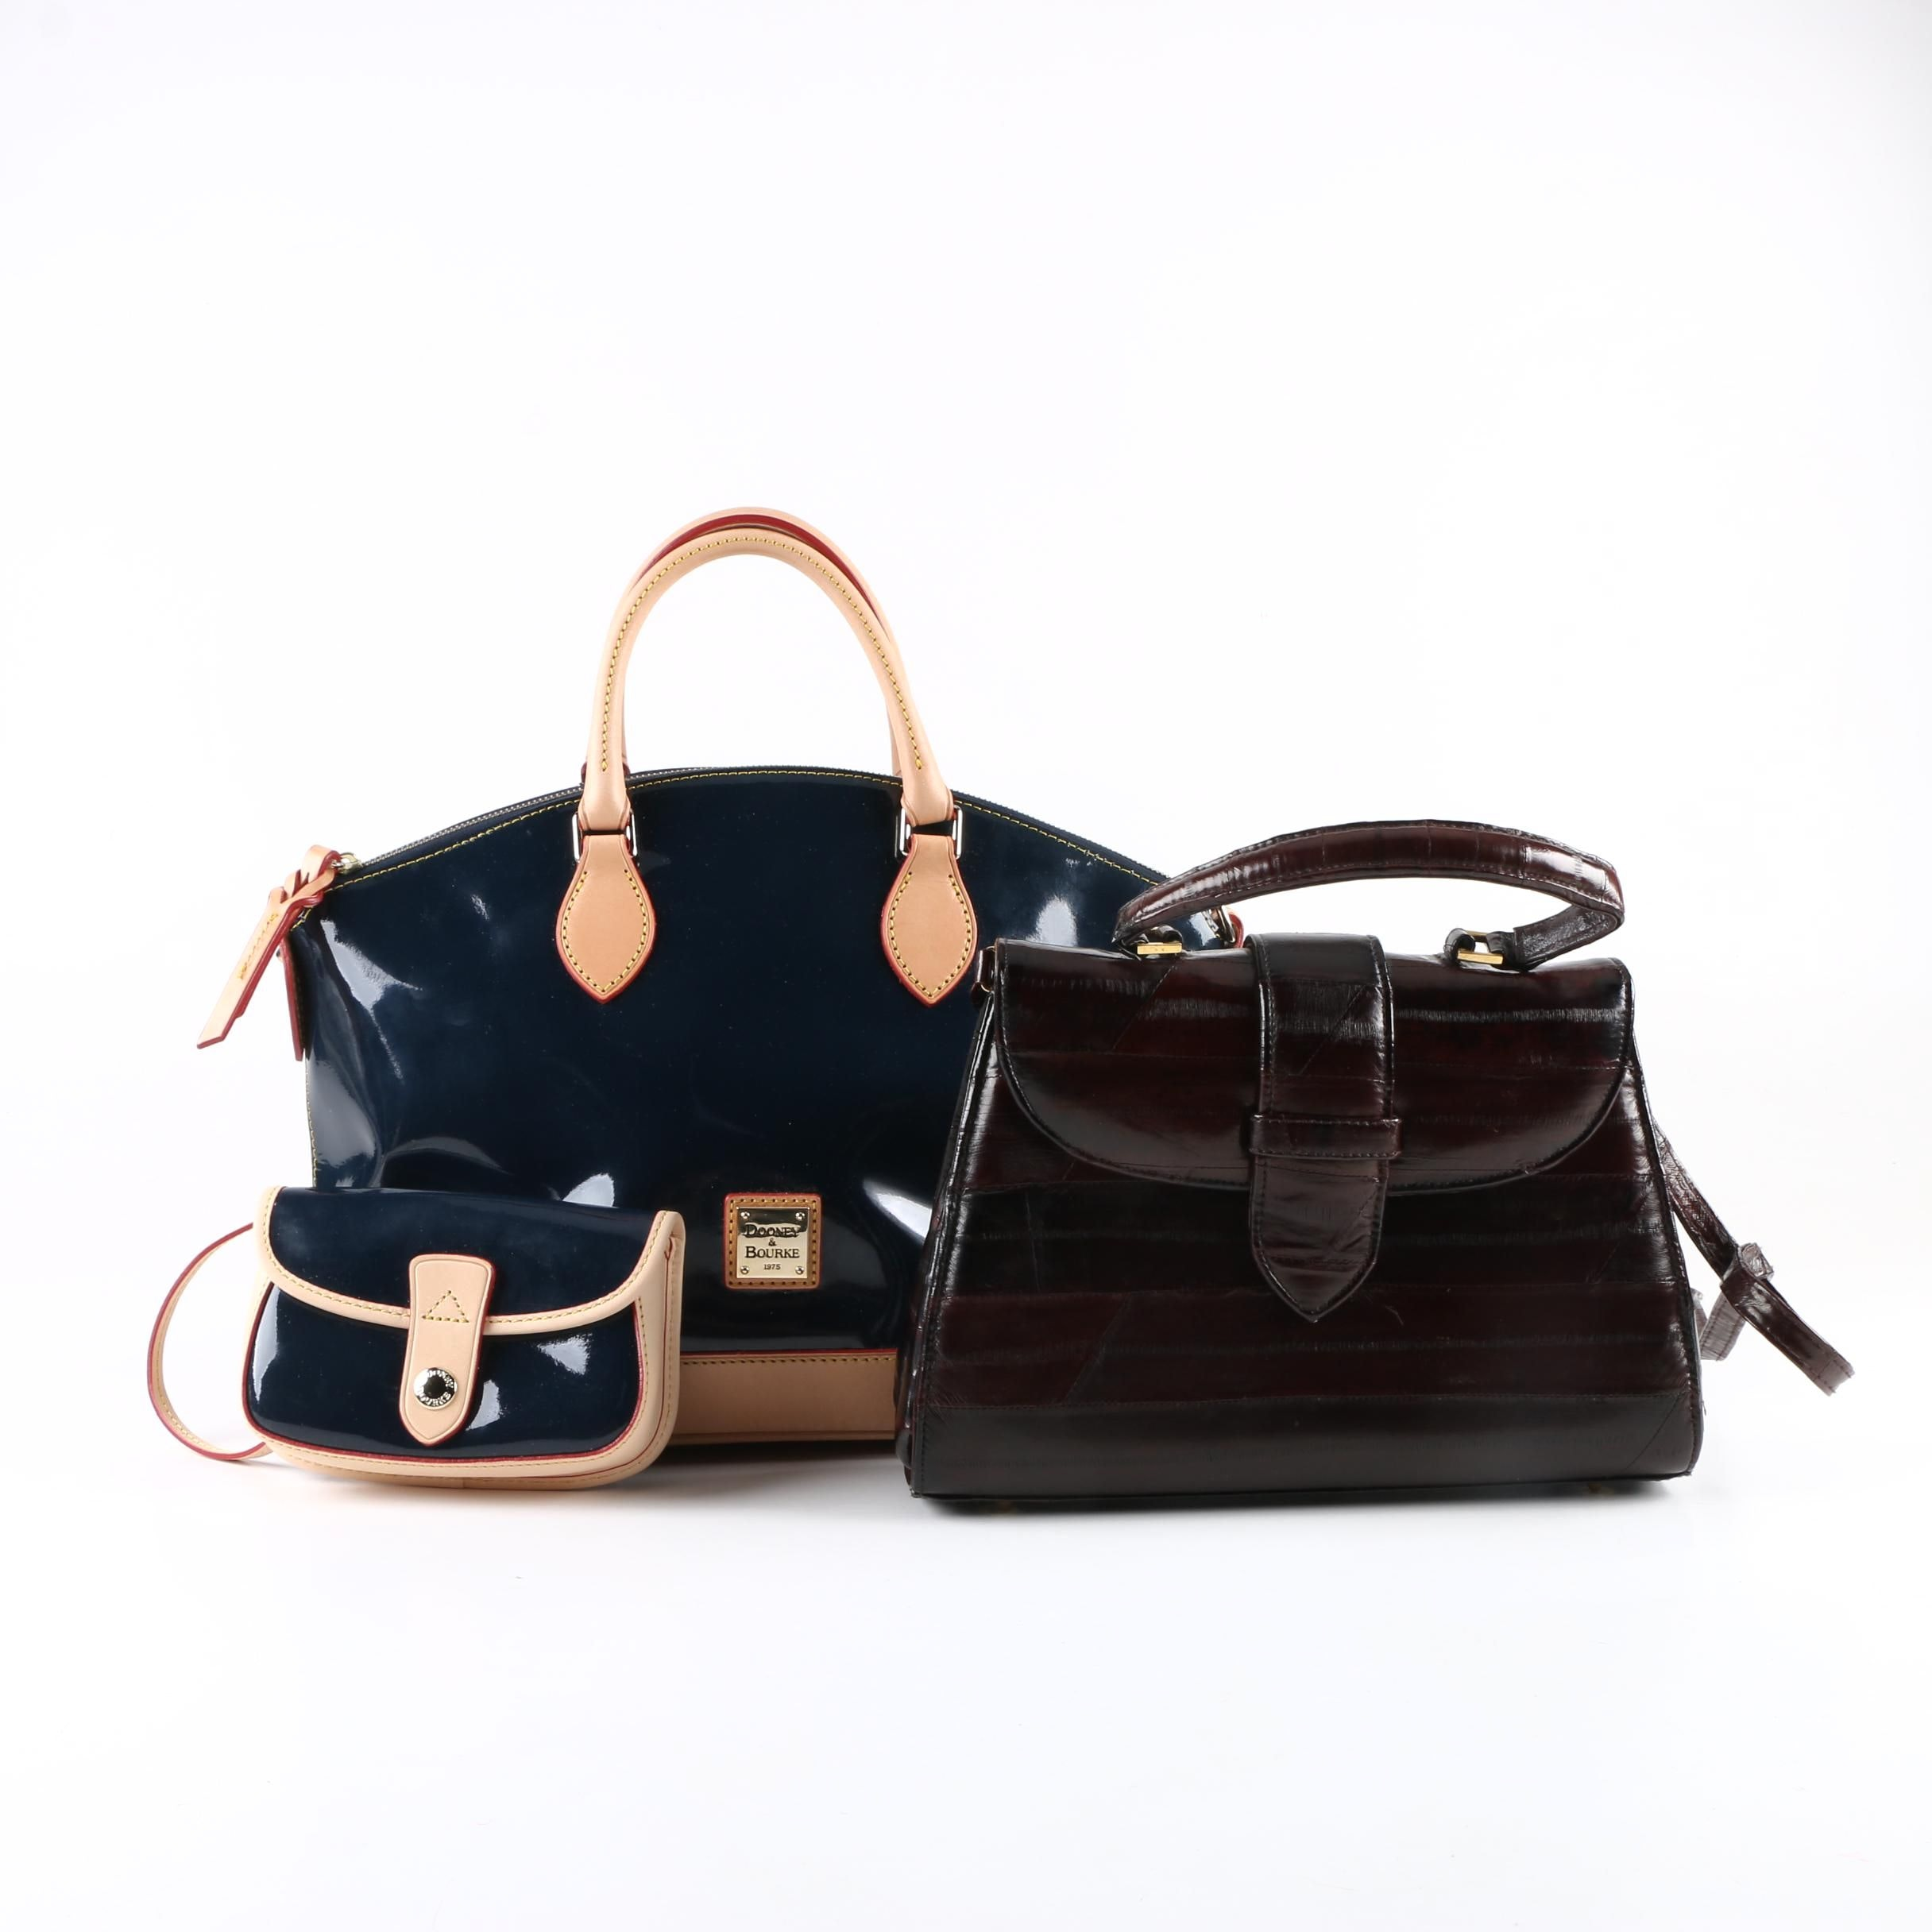 Dooney & Bourke Navy Satchel and Wristlet with J. Reneé Eel Skin Handbag